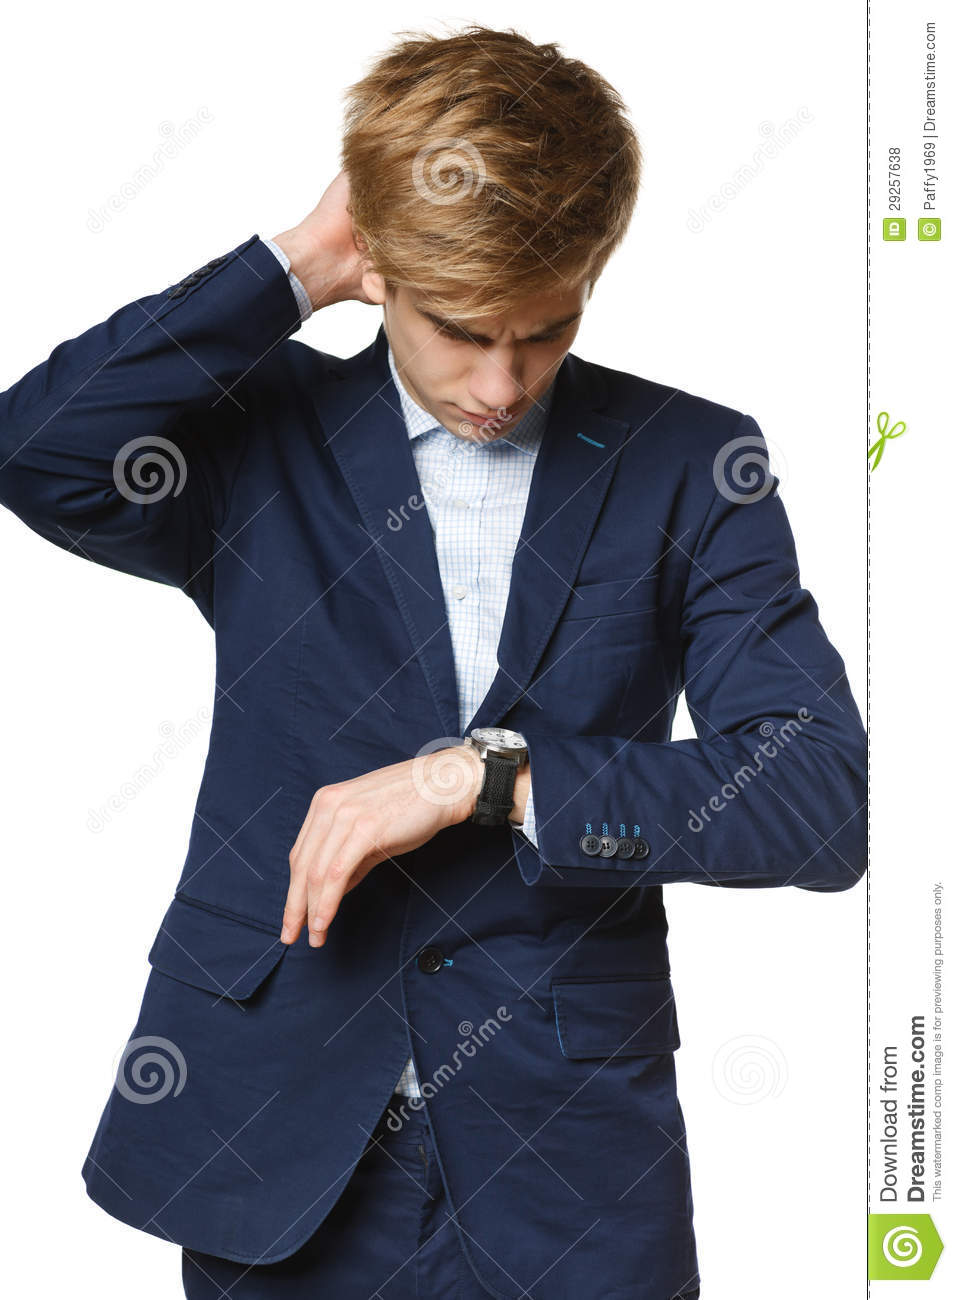 Worried Business Man Looking At Wrist Watch Stock Photo